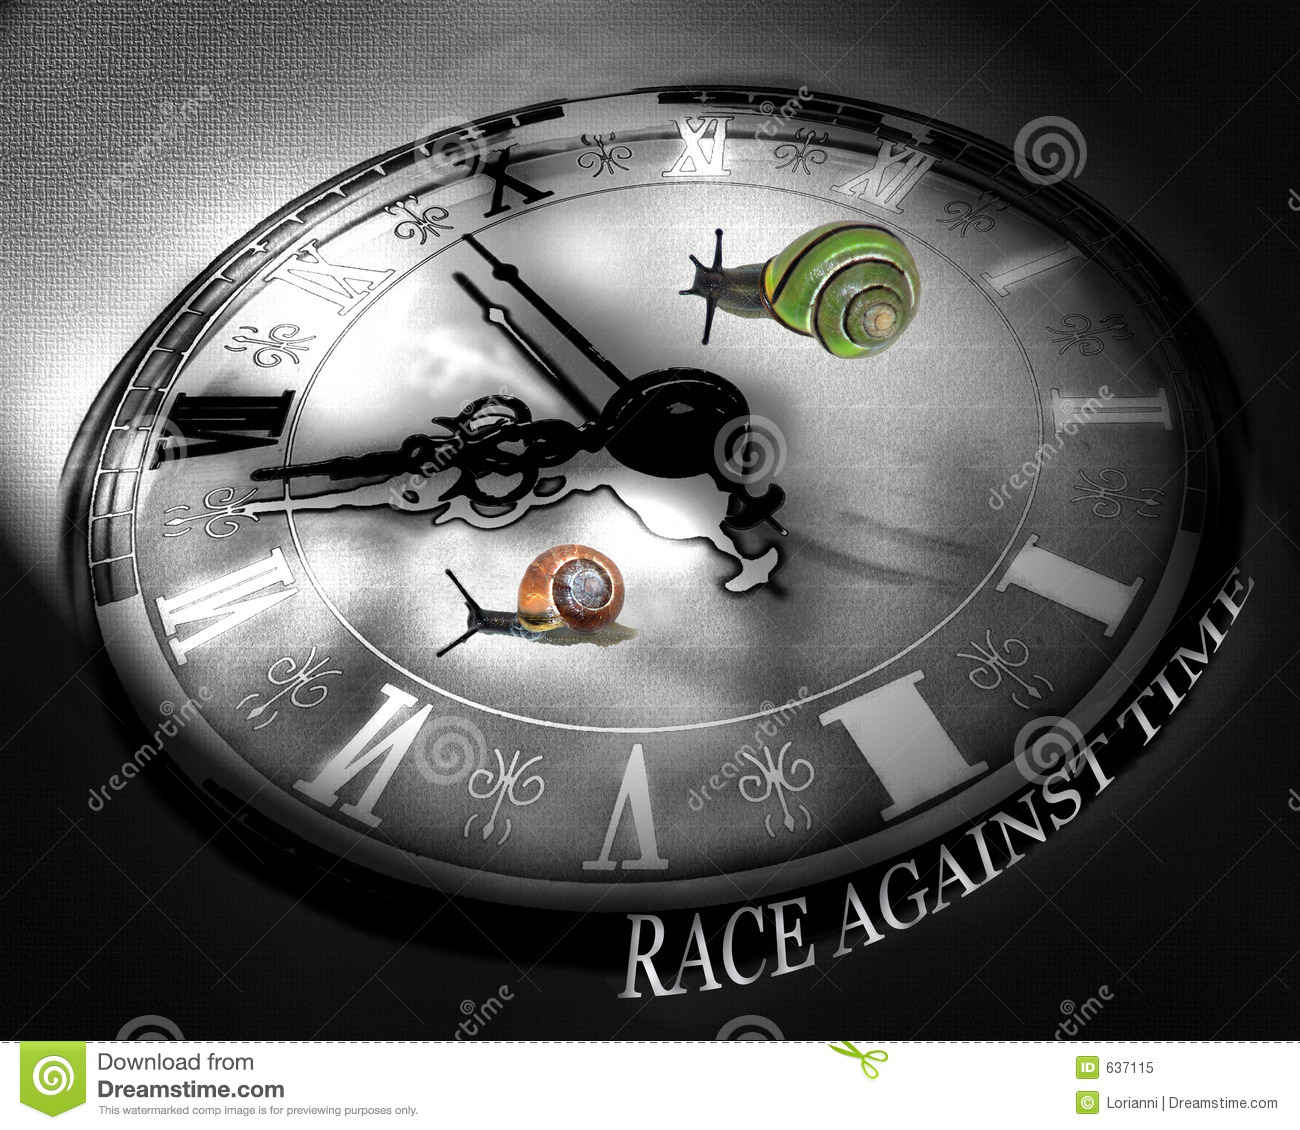 racing against your heart Free college essay racing against your heart racing against your heart friedman, m  & roseman, rh (1959) association of specific over behavior pattern with blood and cardiovascular.